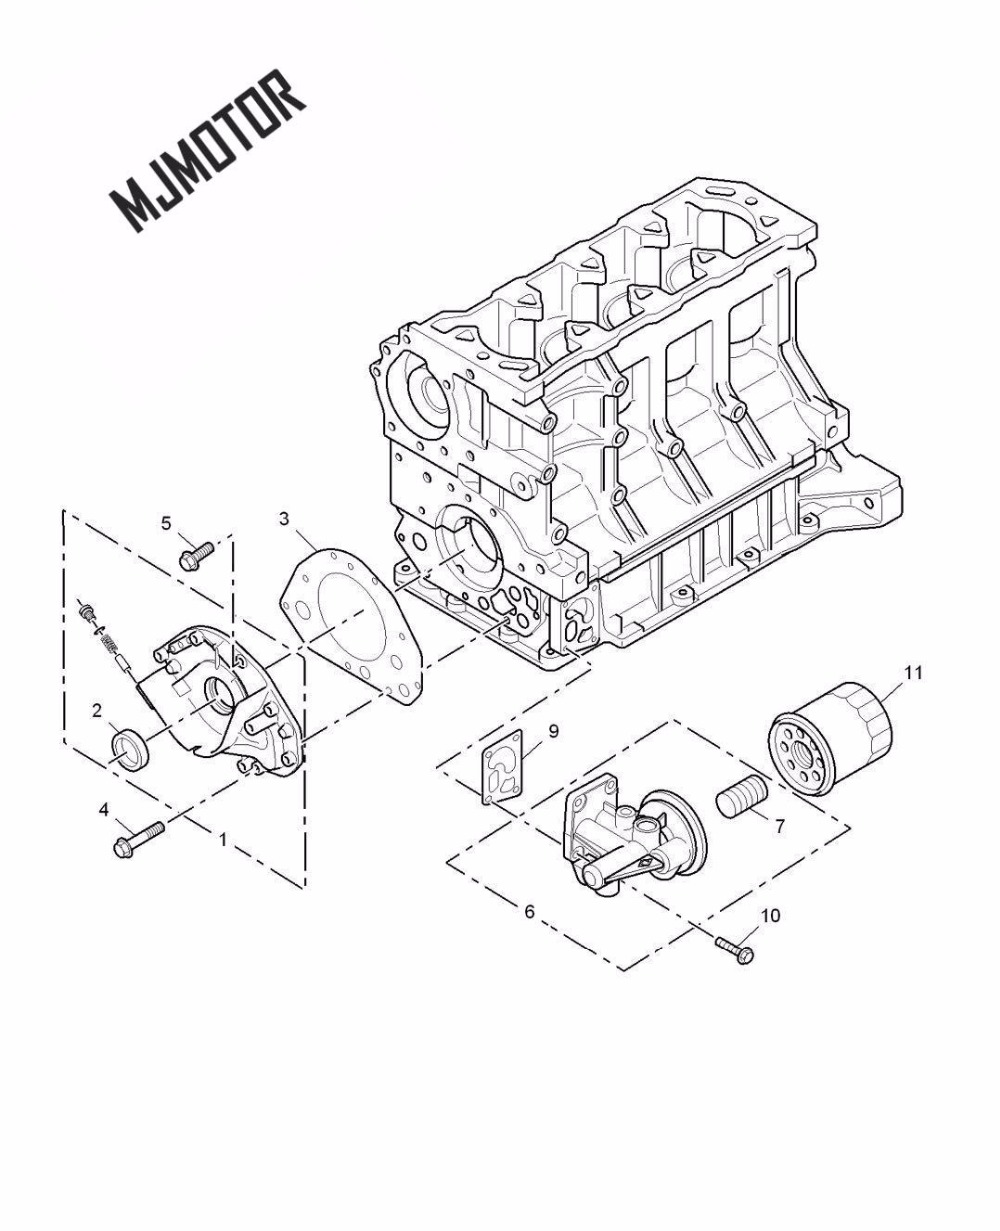 small resolution of vw 2 0t fsi engine diagram wiring library 1 8t engine diagram oil pump automotive wiring